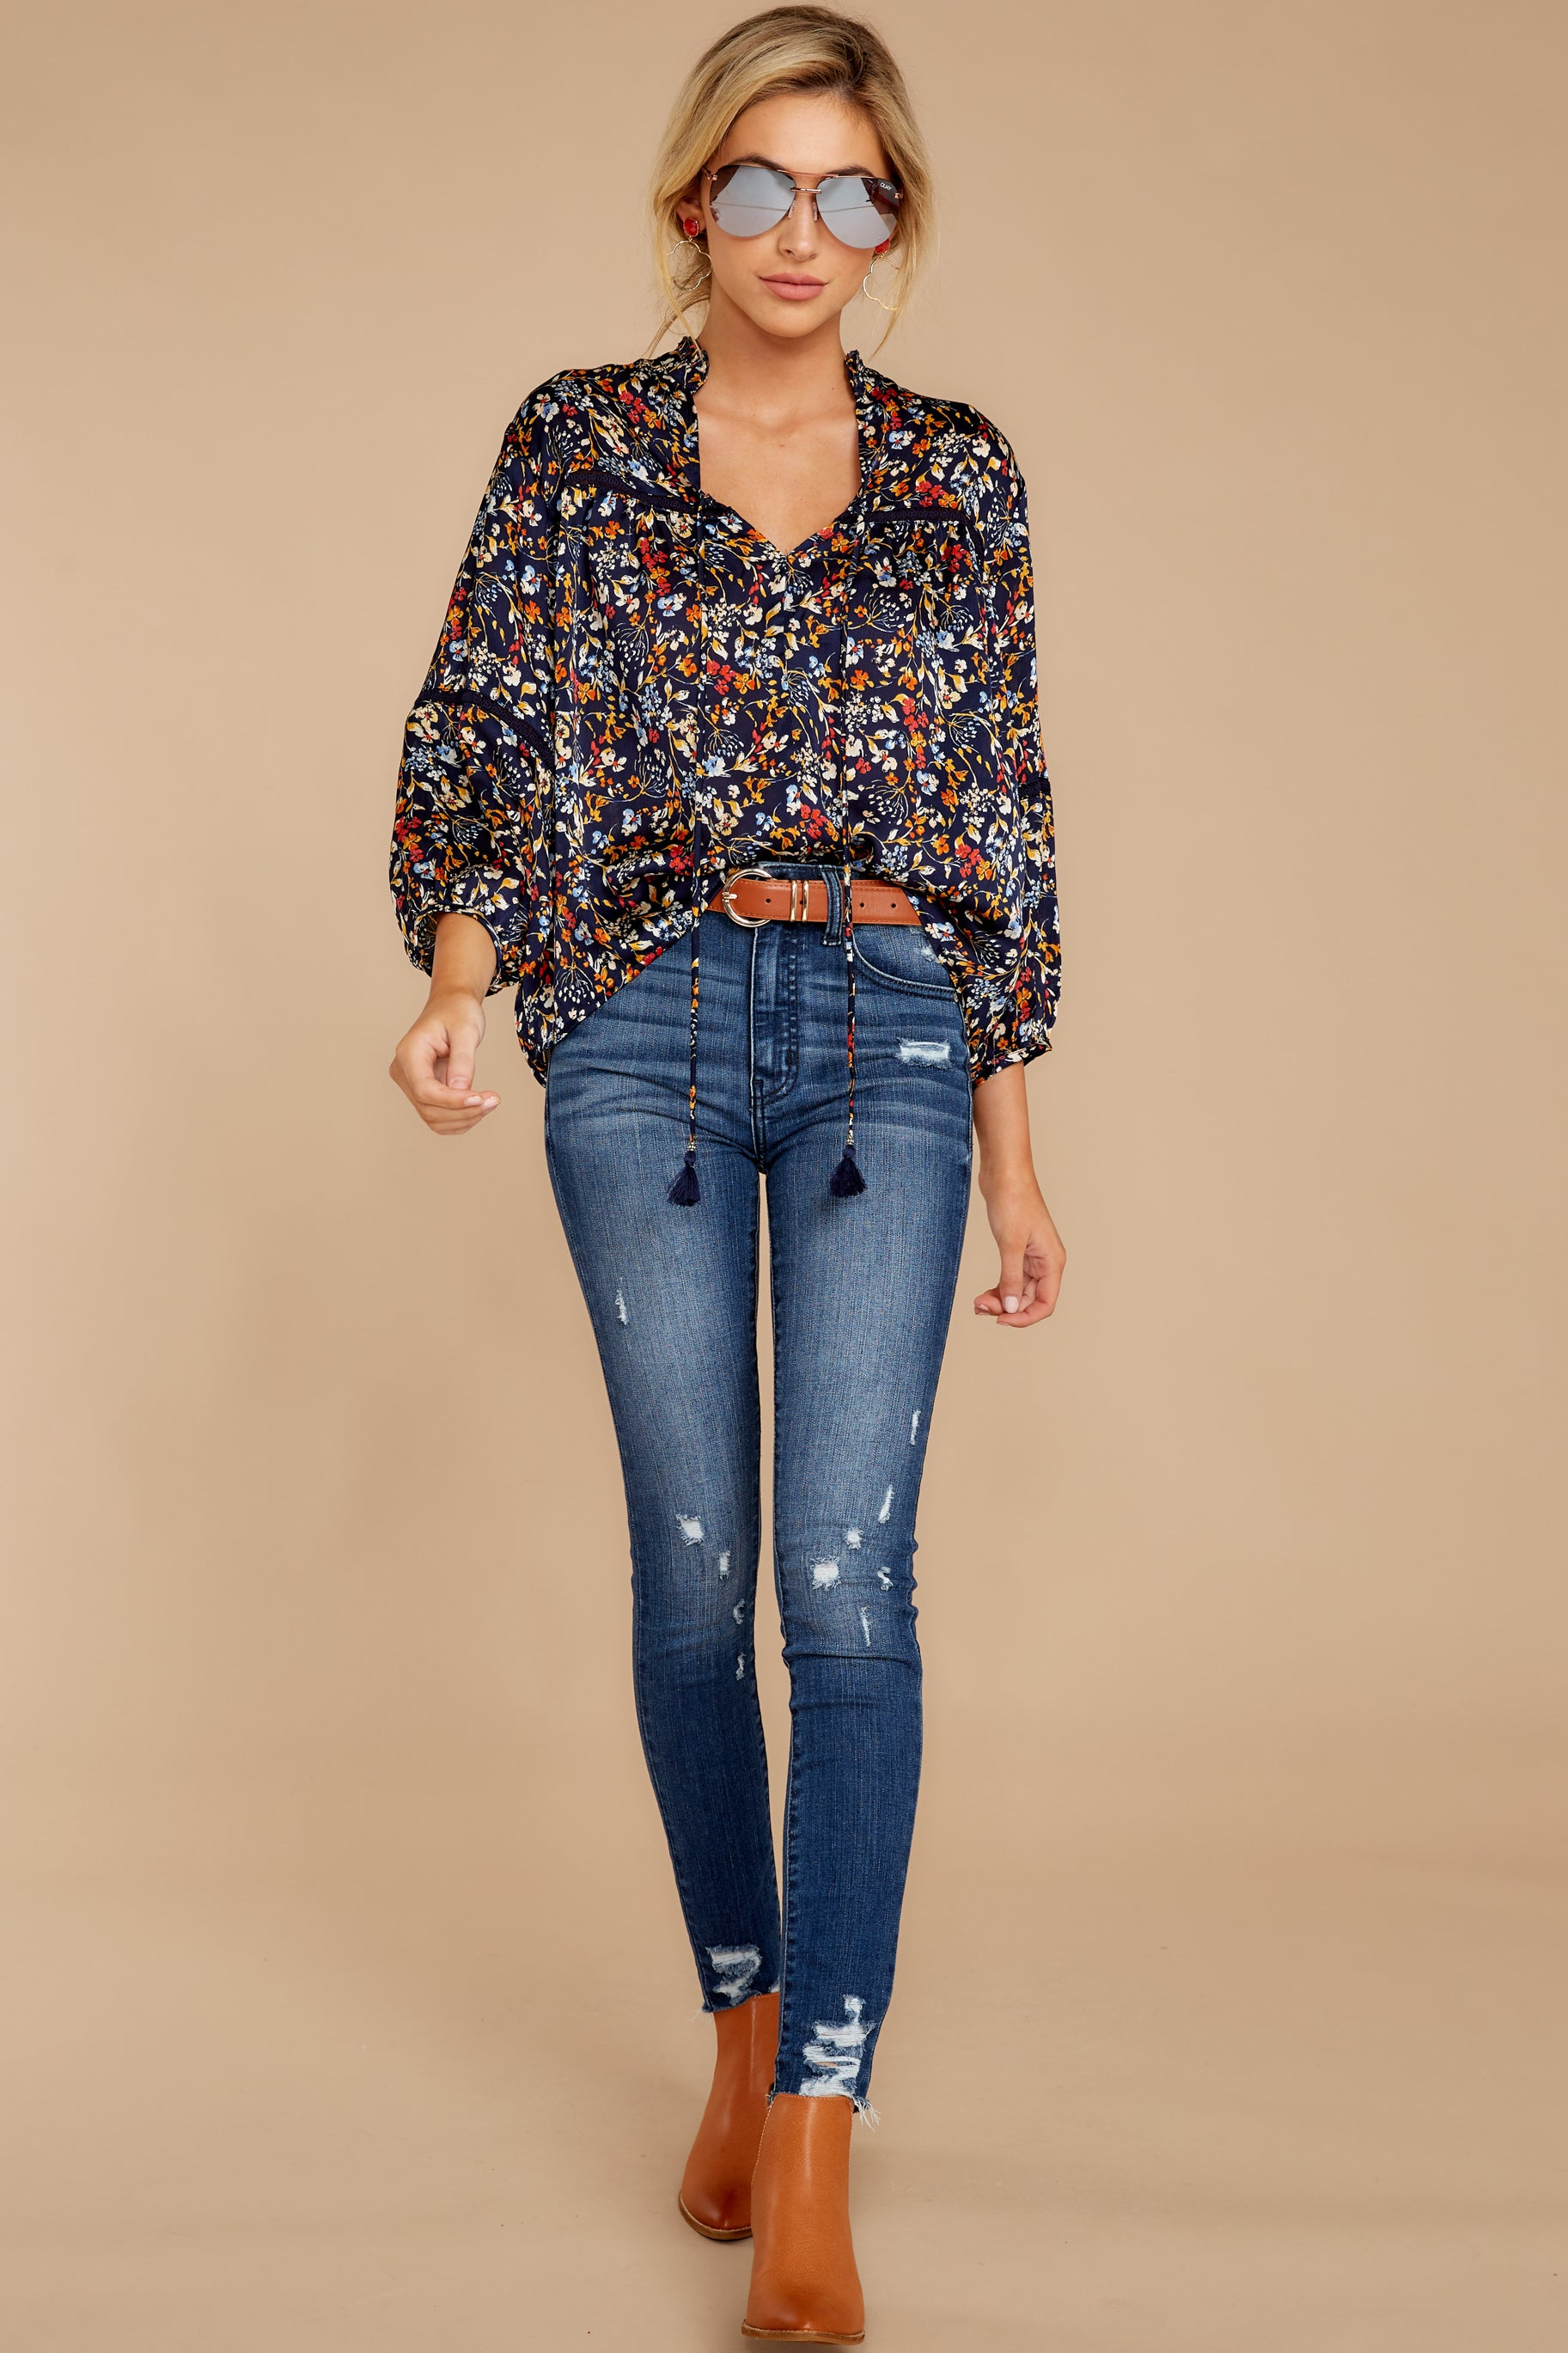 Prairie Flowers Navy Floral Print Top